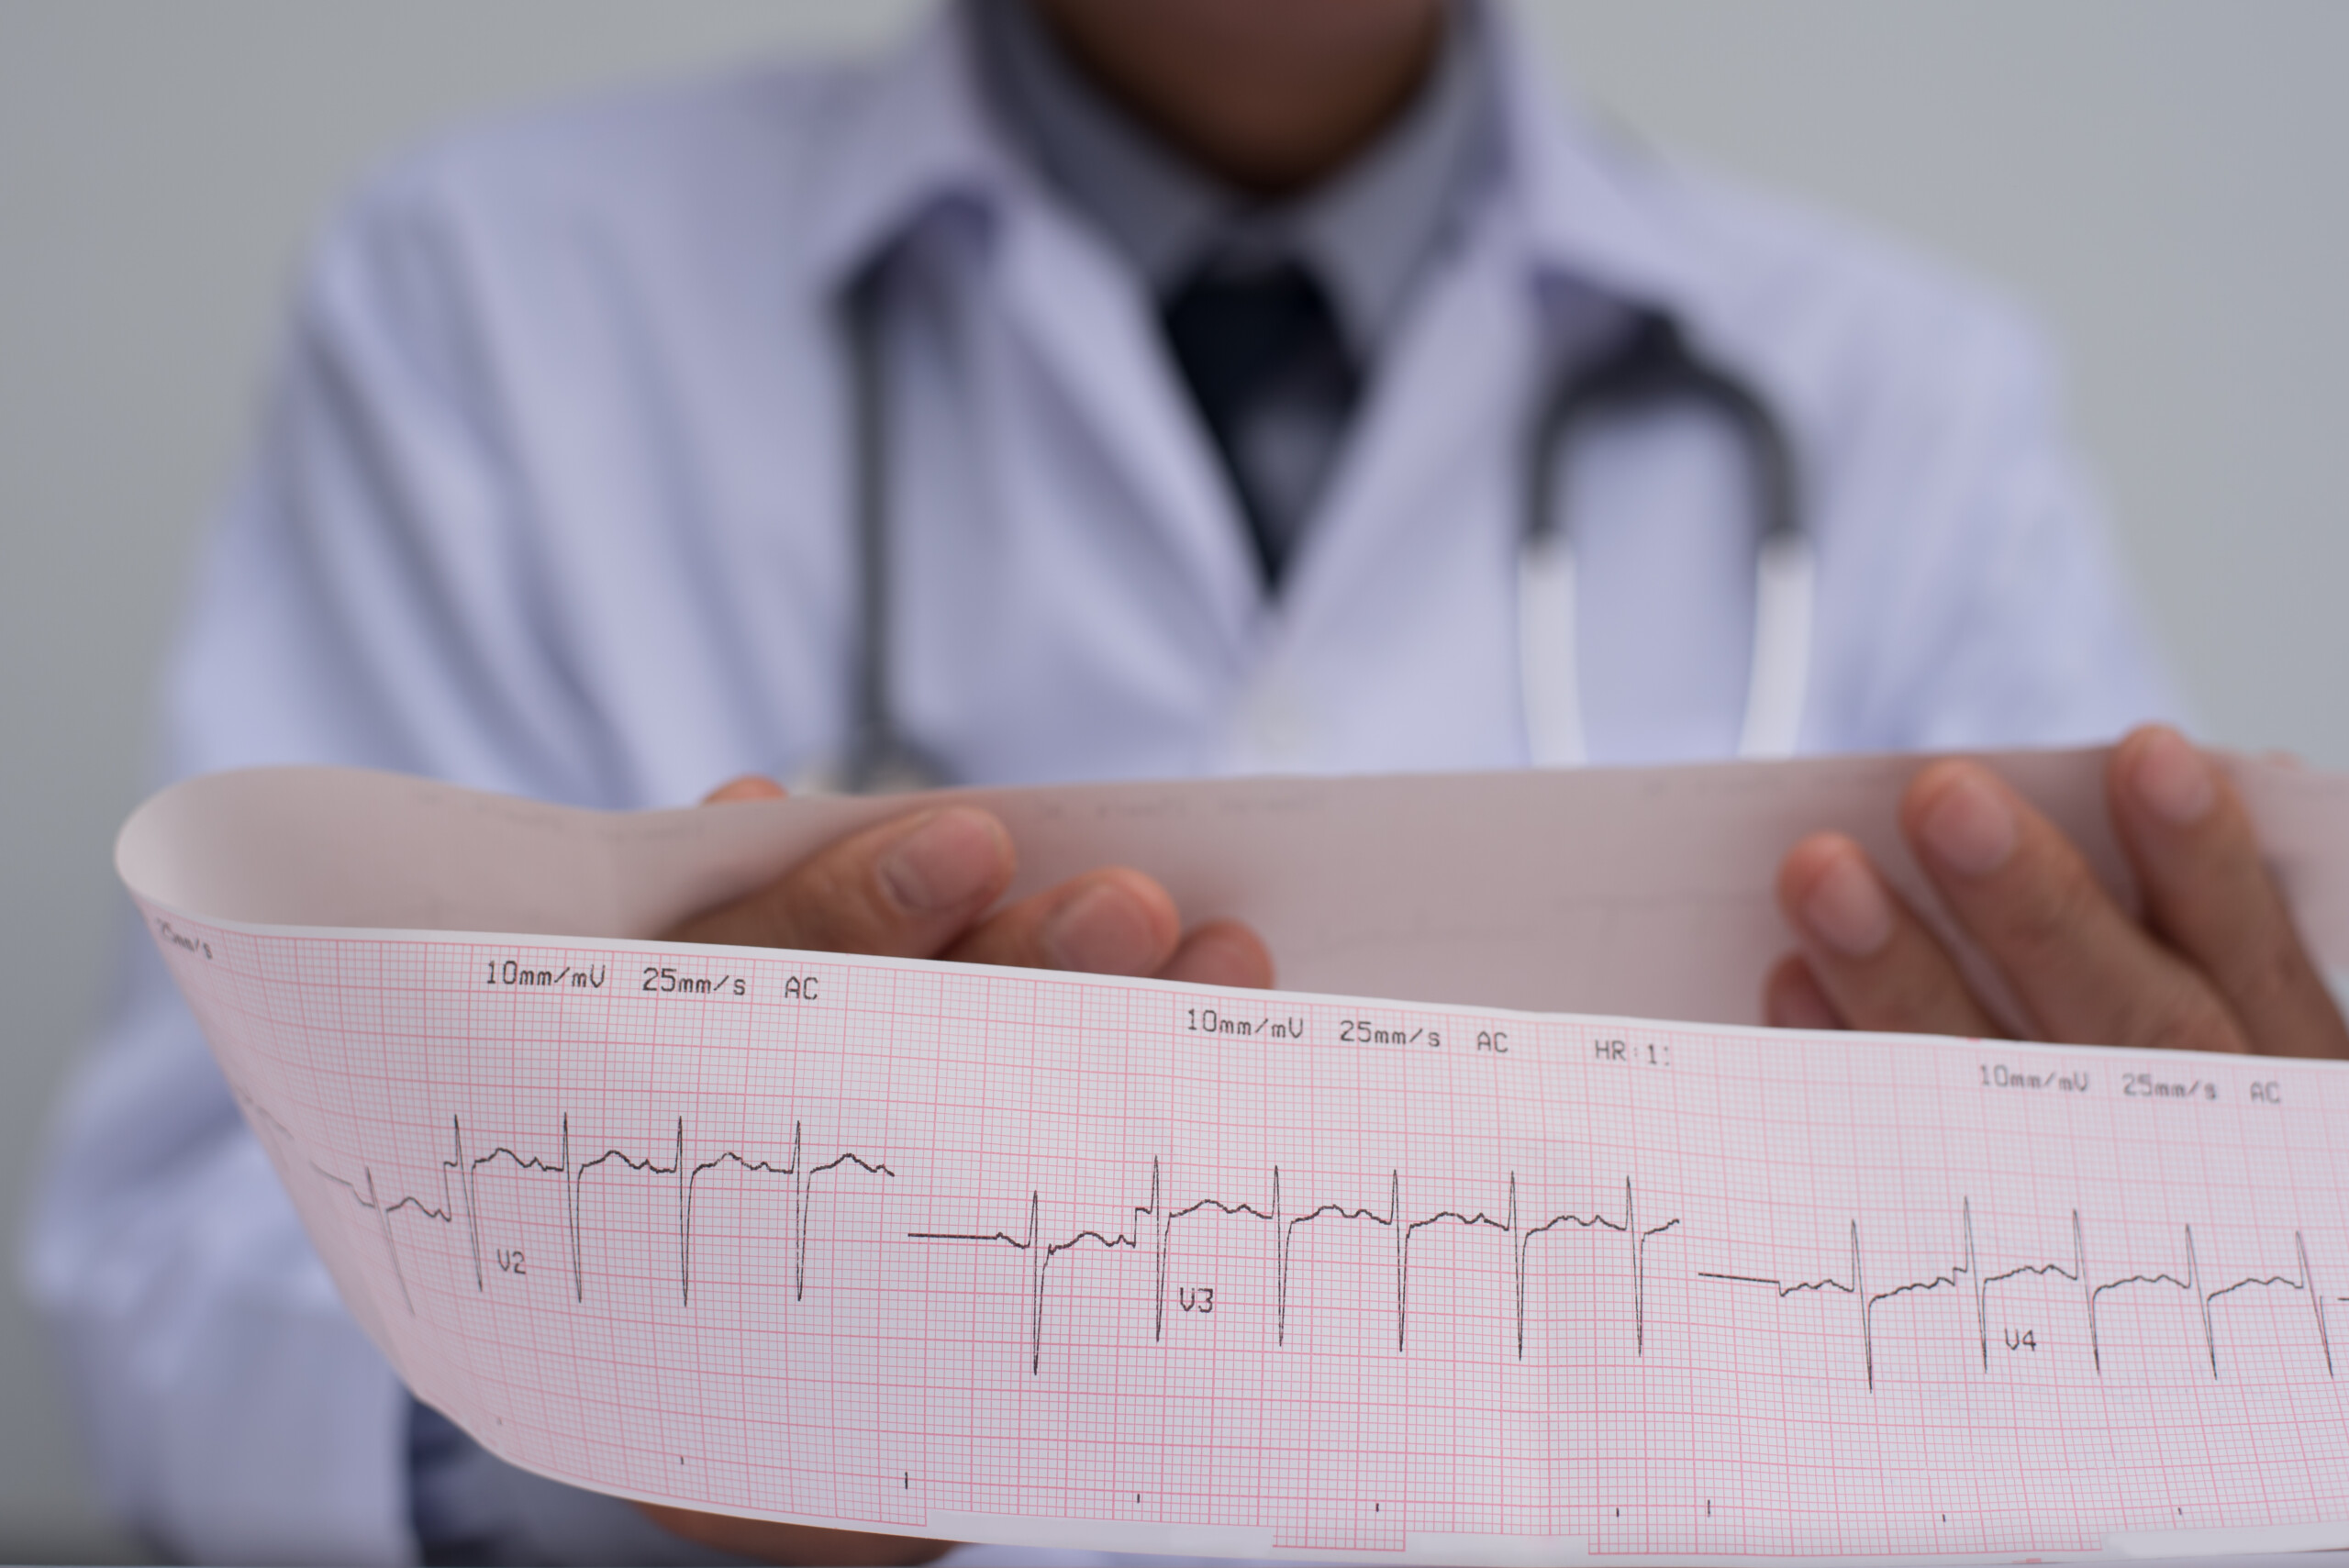 Does Every Episode of Atrial Fibrillation Damage the Heart ?